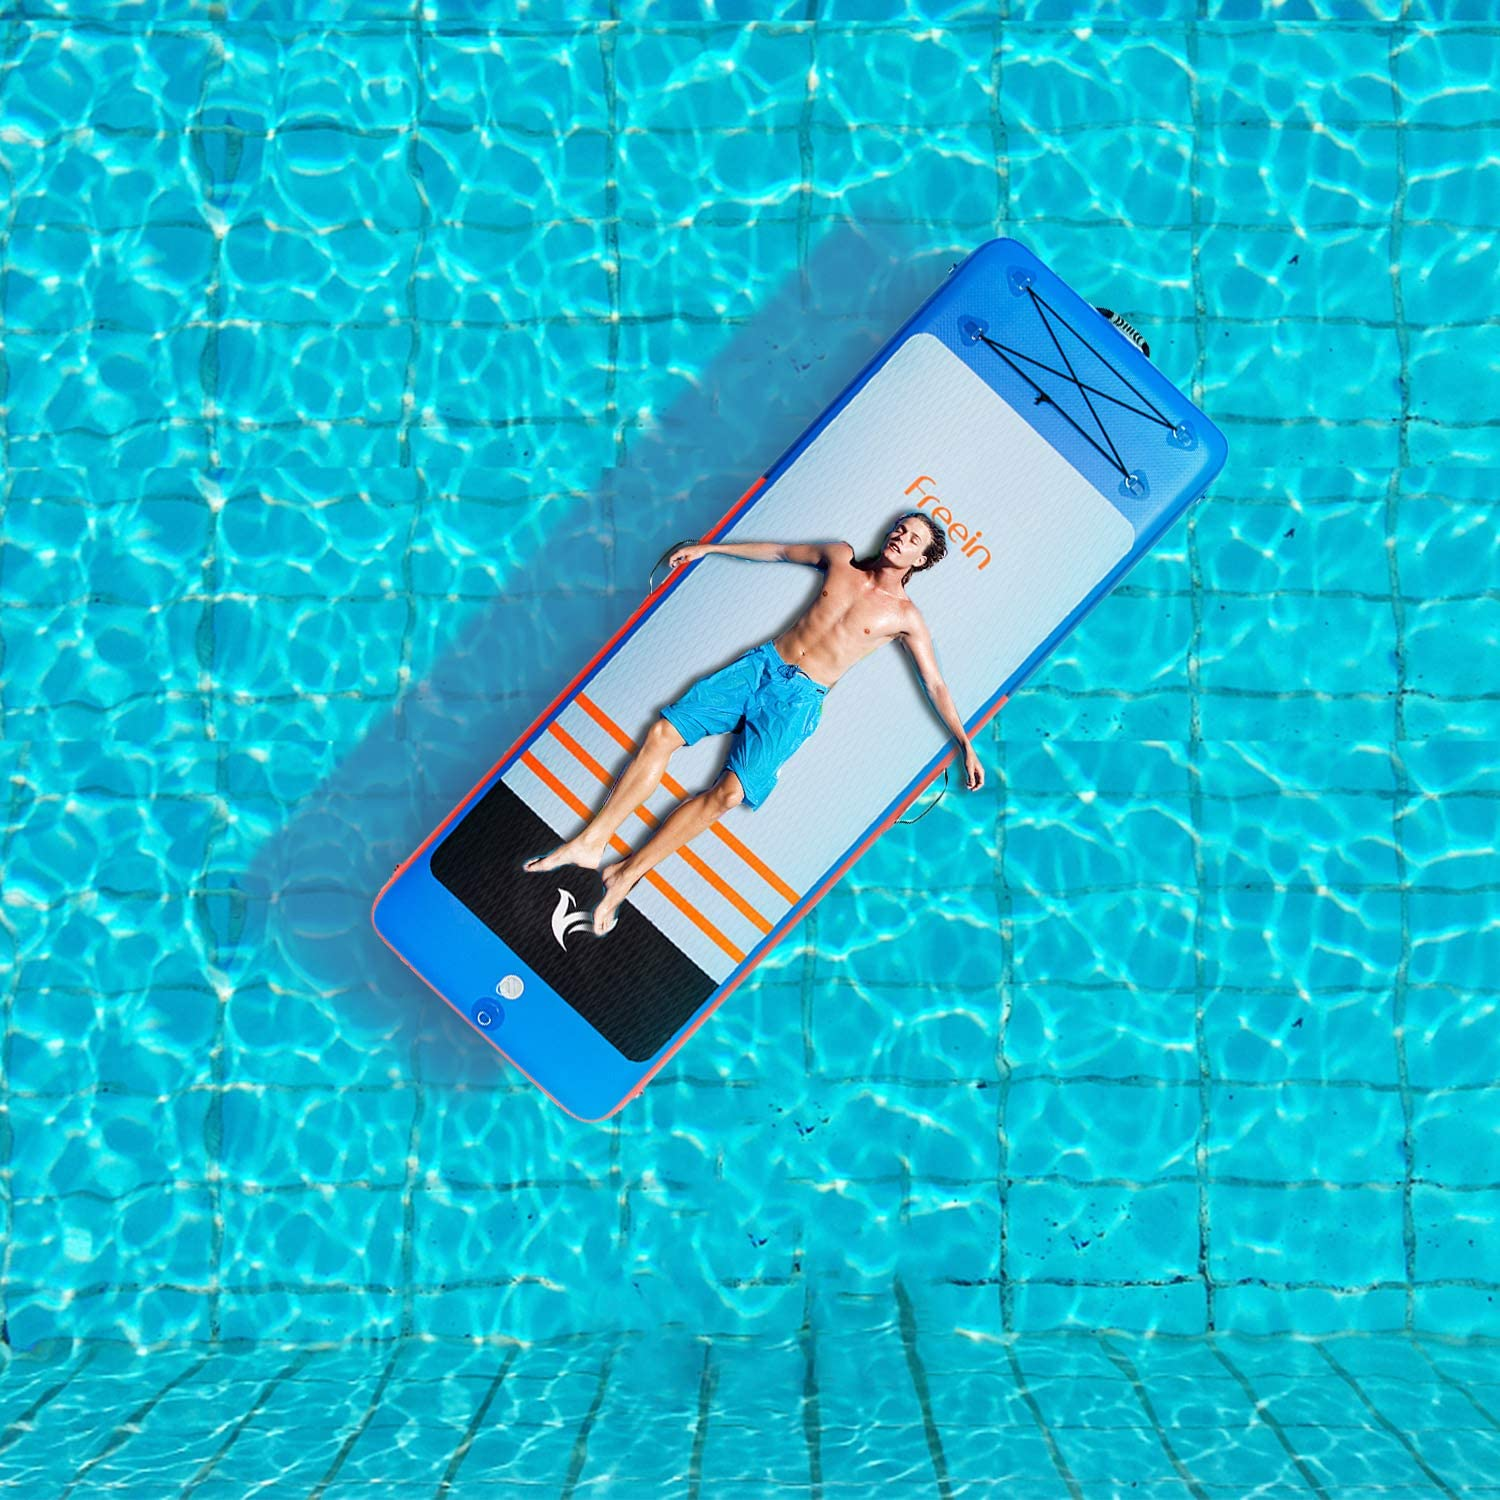 a person lounging on an inflatable pool mat